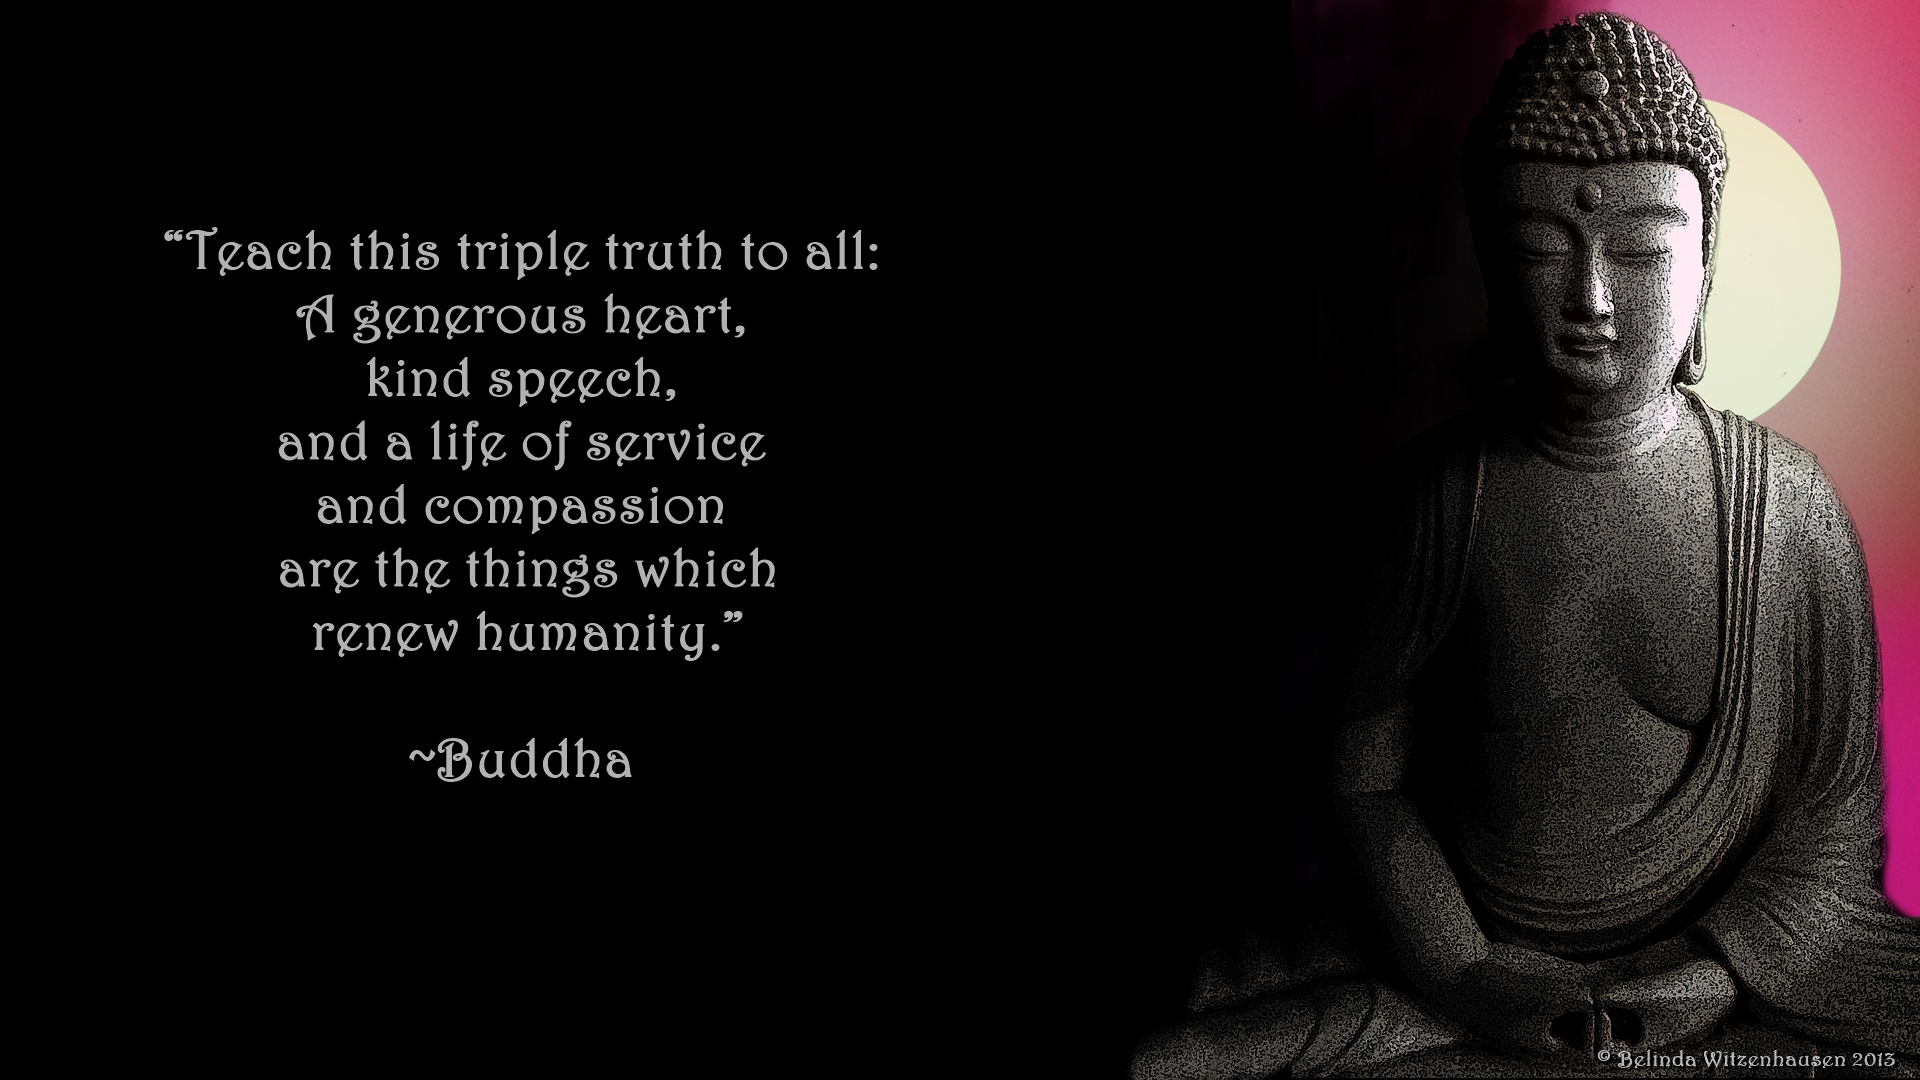 WALLPAPER WITH POSITIVE QUOTE BY LORD BUDDHA TRIPLE TRUTH FOR ALL 1920x1080